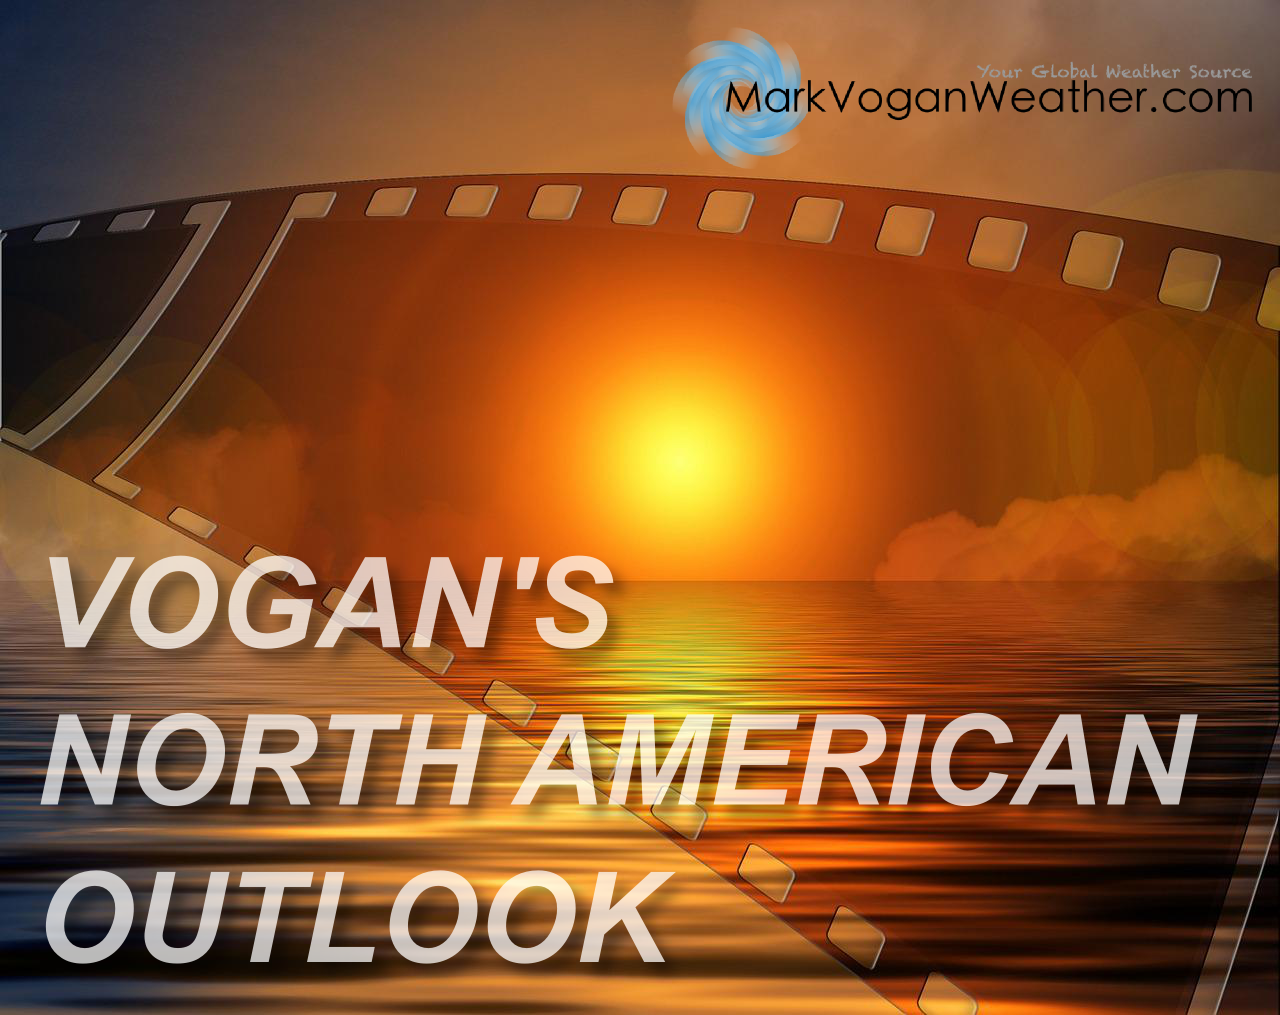 MON 10 MAR: VOGAN'S NORTH AMERICAN OUTLOOK